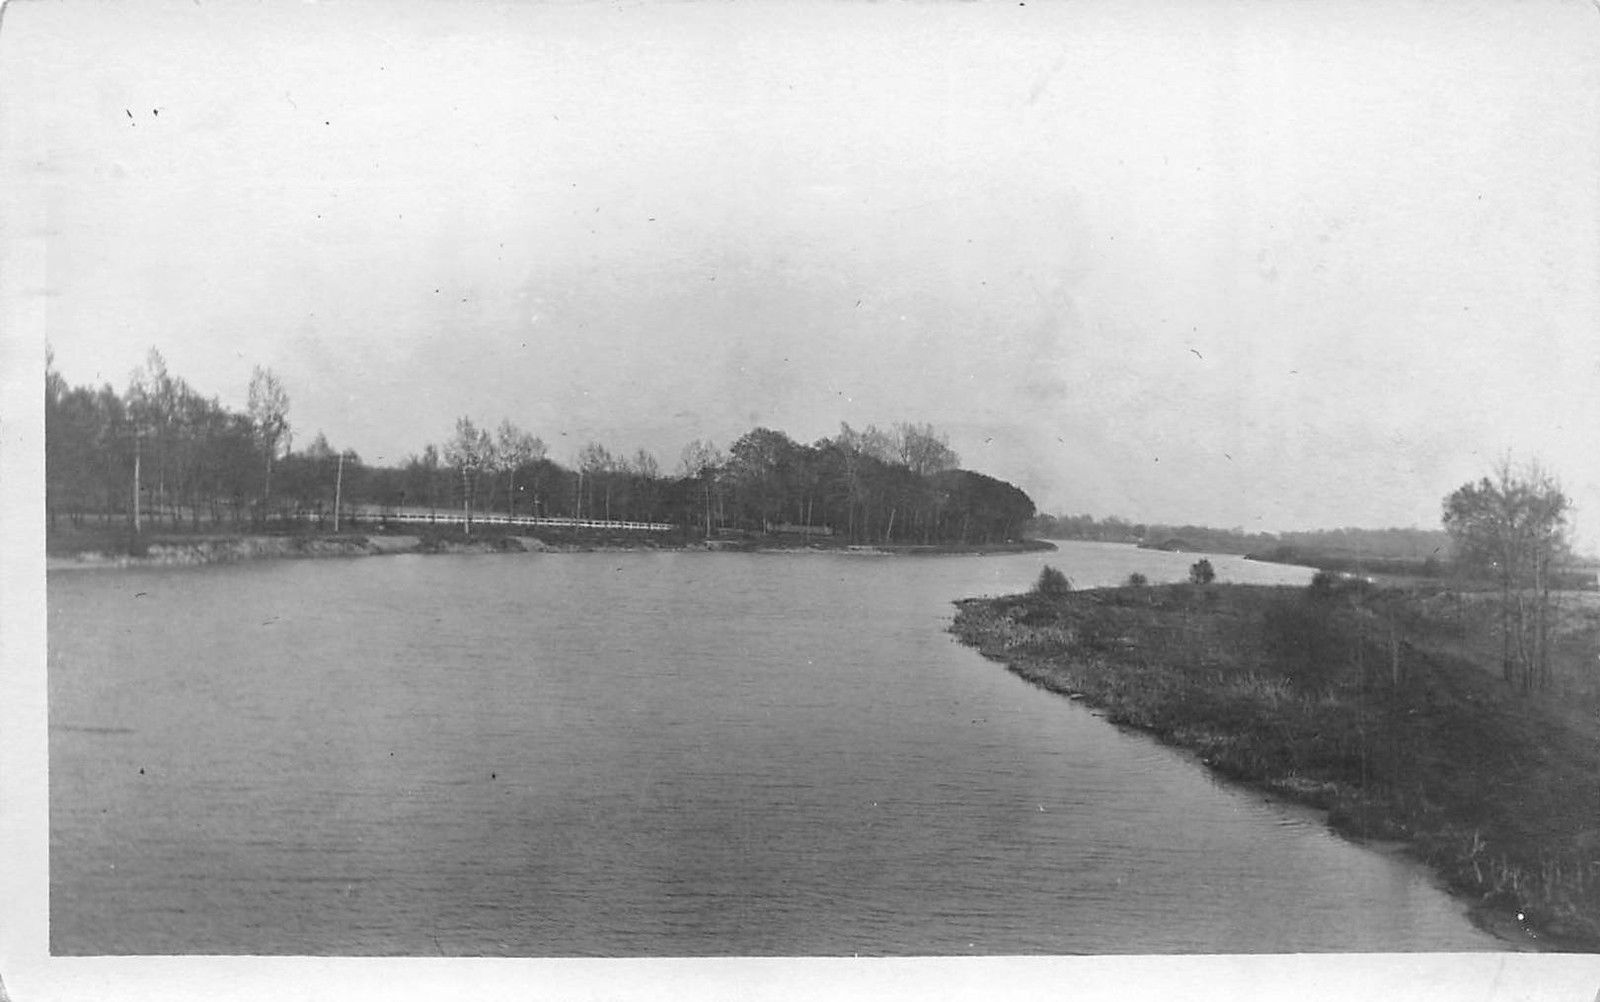 Erie Canal looking South, Martinsville, Buschs Bridge, photo (1914).jpg